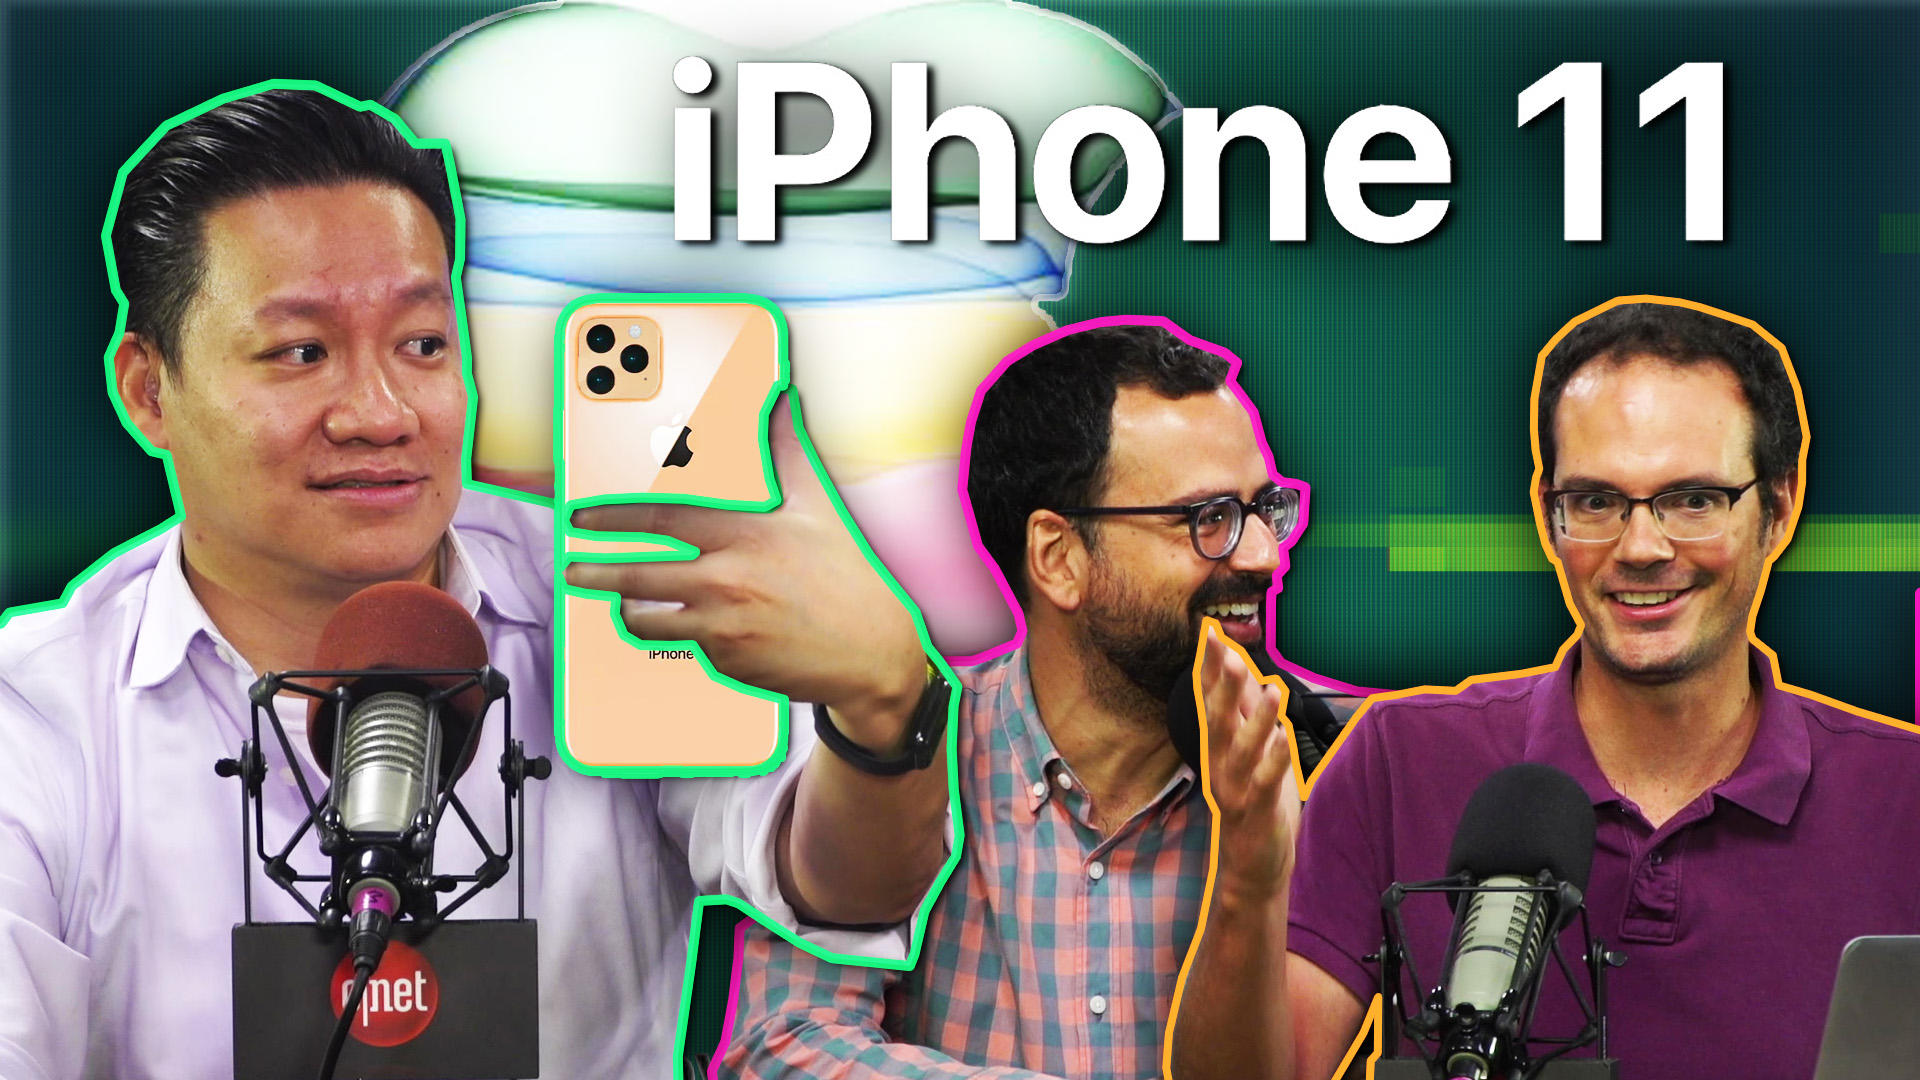 Video: Our big Apple iPhone 11 preview (The Daily Charge, 9/5/2019)